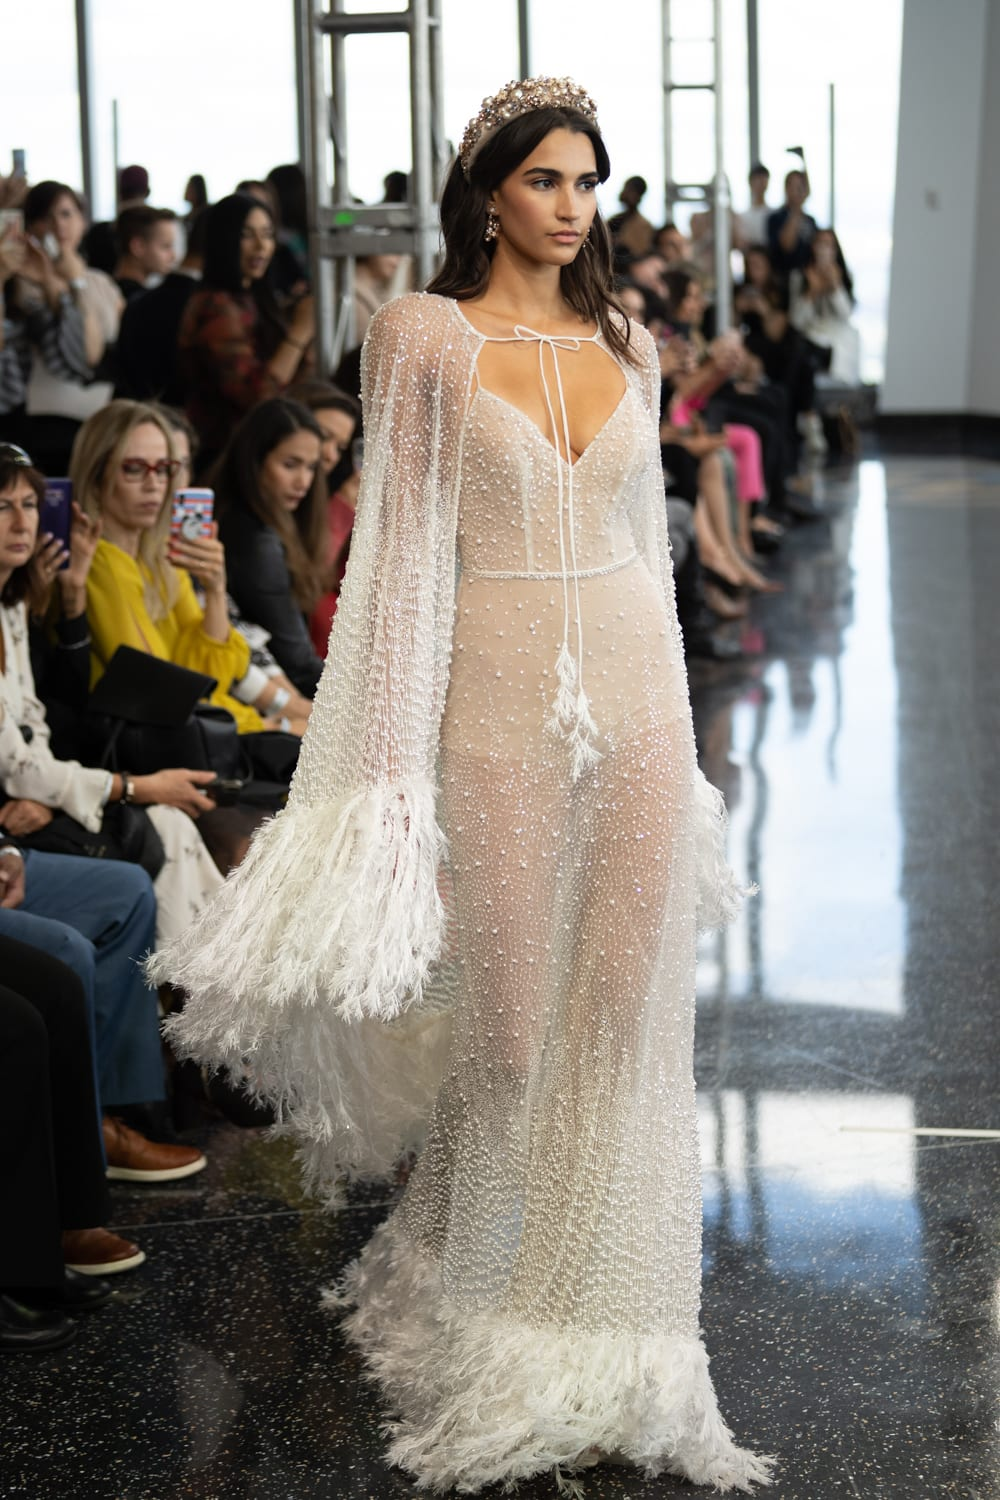 #berta #2020wedding #2020weddingdresses #weddingtrend #weddingdresses #brides #bridalgown #modernwedding